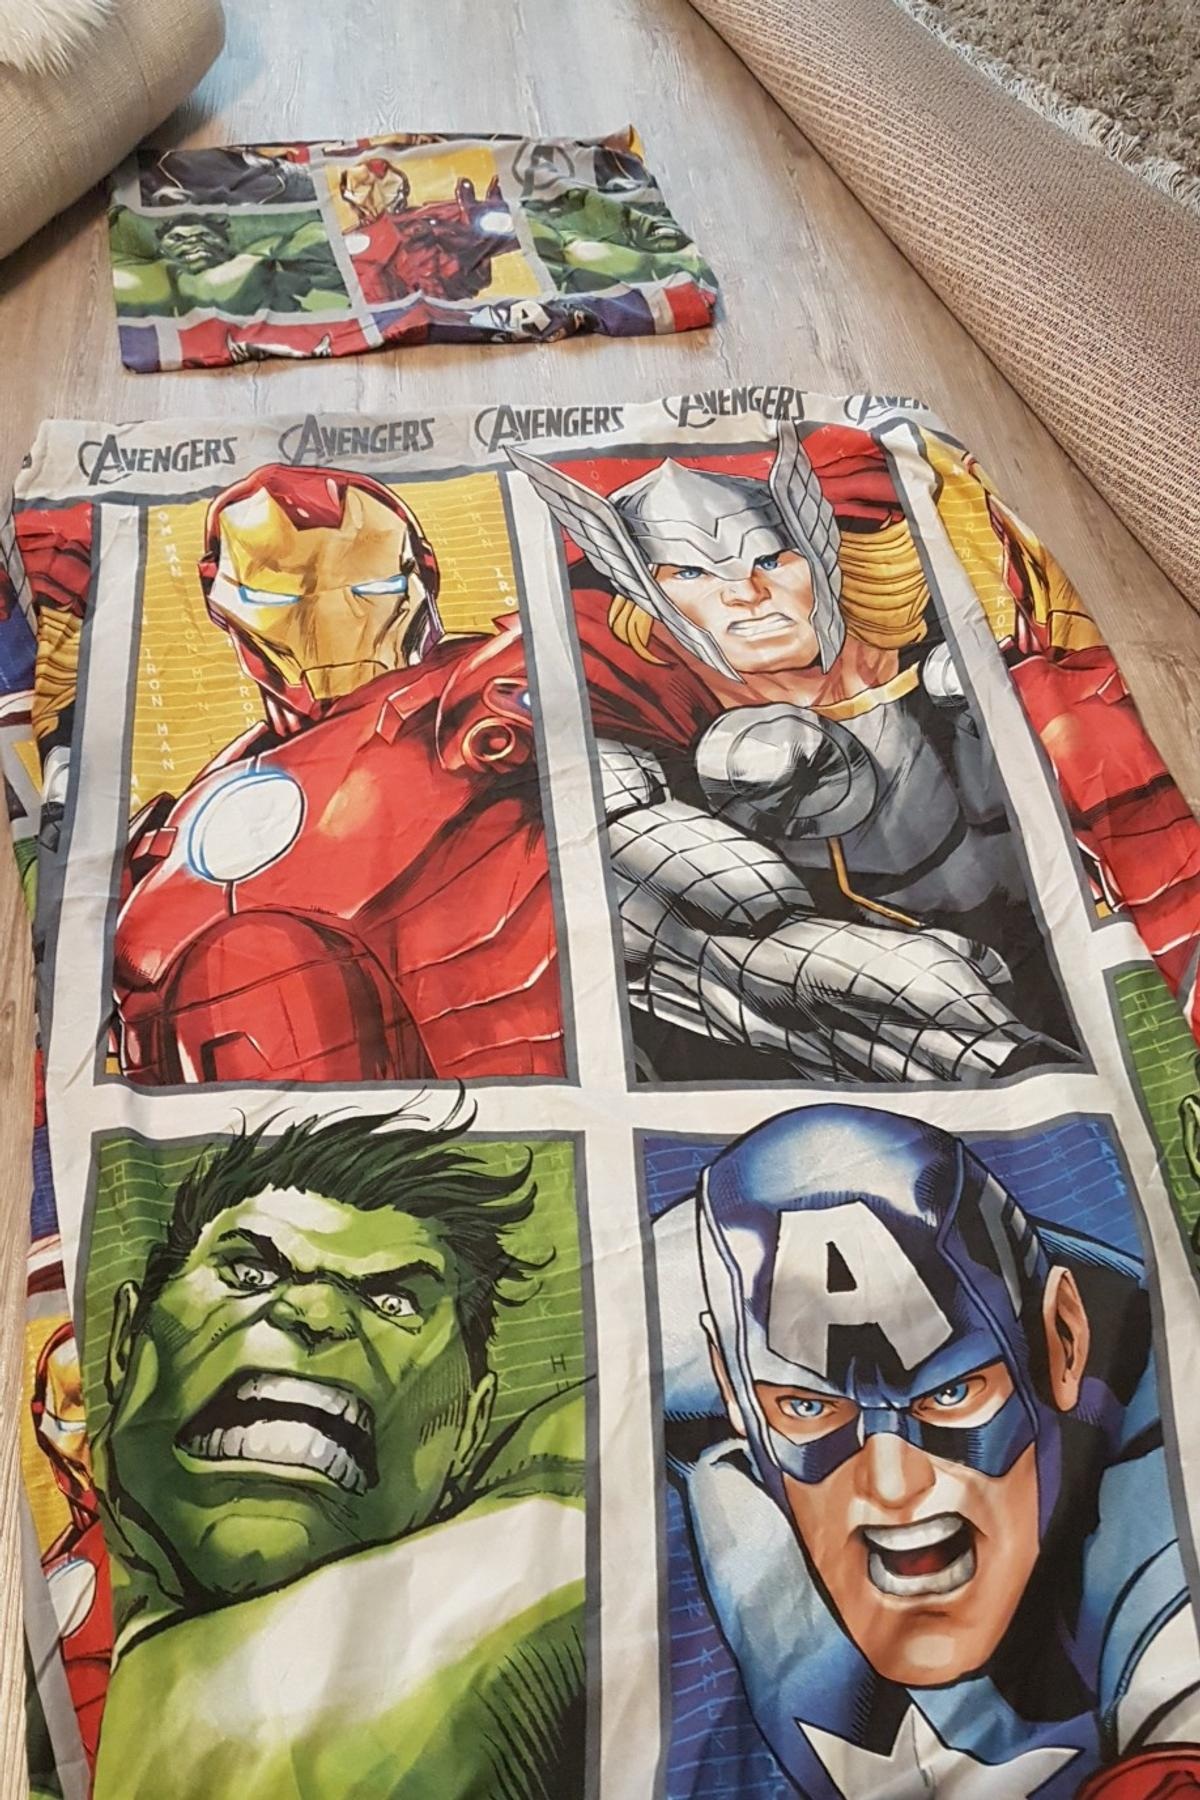 Marvel Avengers Bettwäsche In 23743 Grömitz For 1000 For Sale Shpock